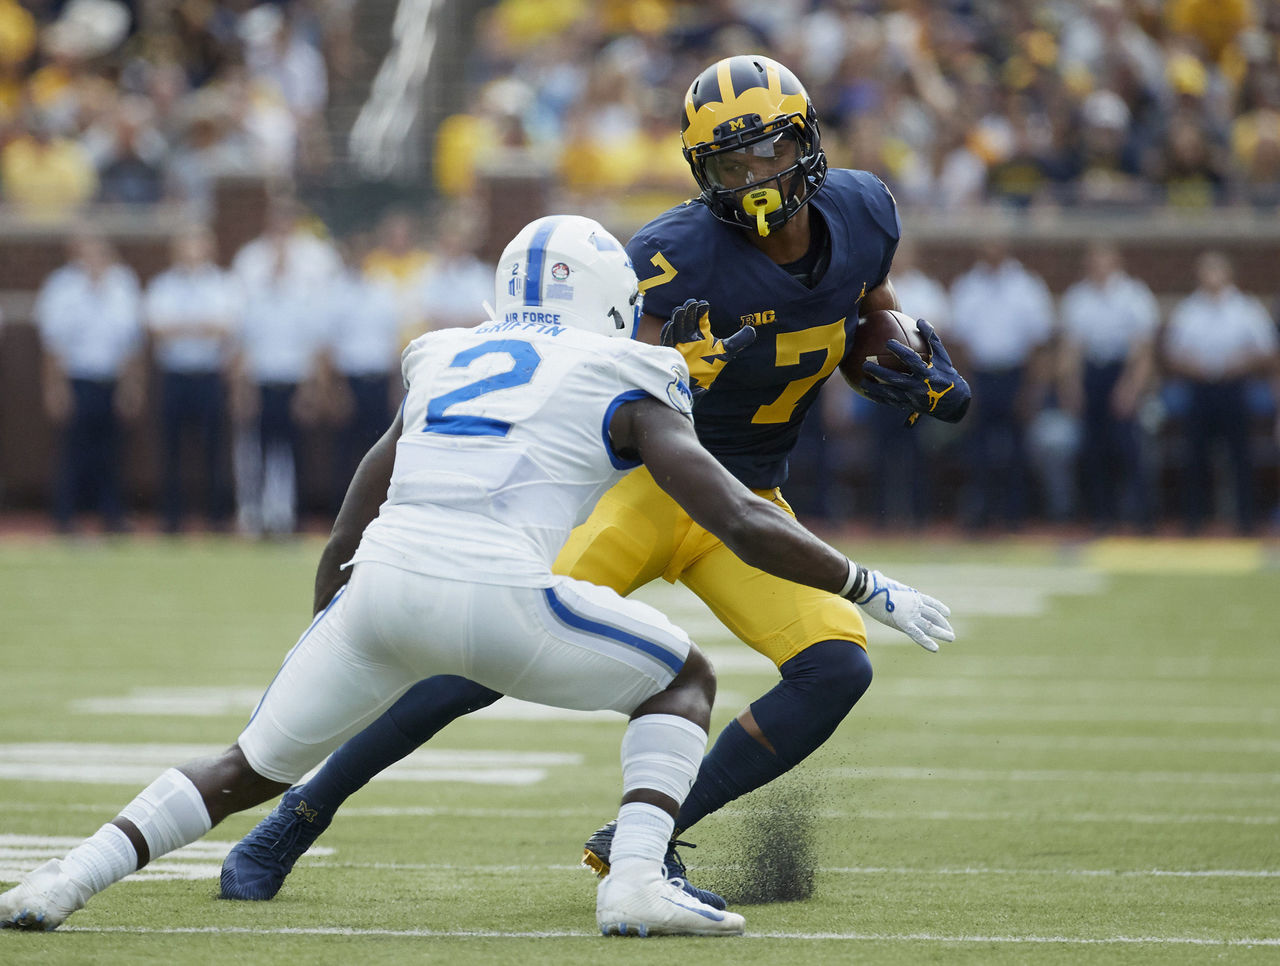 Cropped 2017 09 16t201404z 1948662595 nocid rtrmadp 3 ncaa football air force at michigan